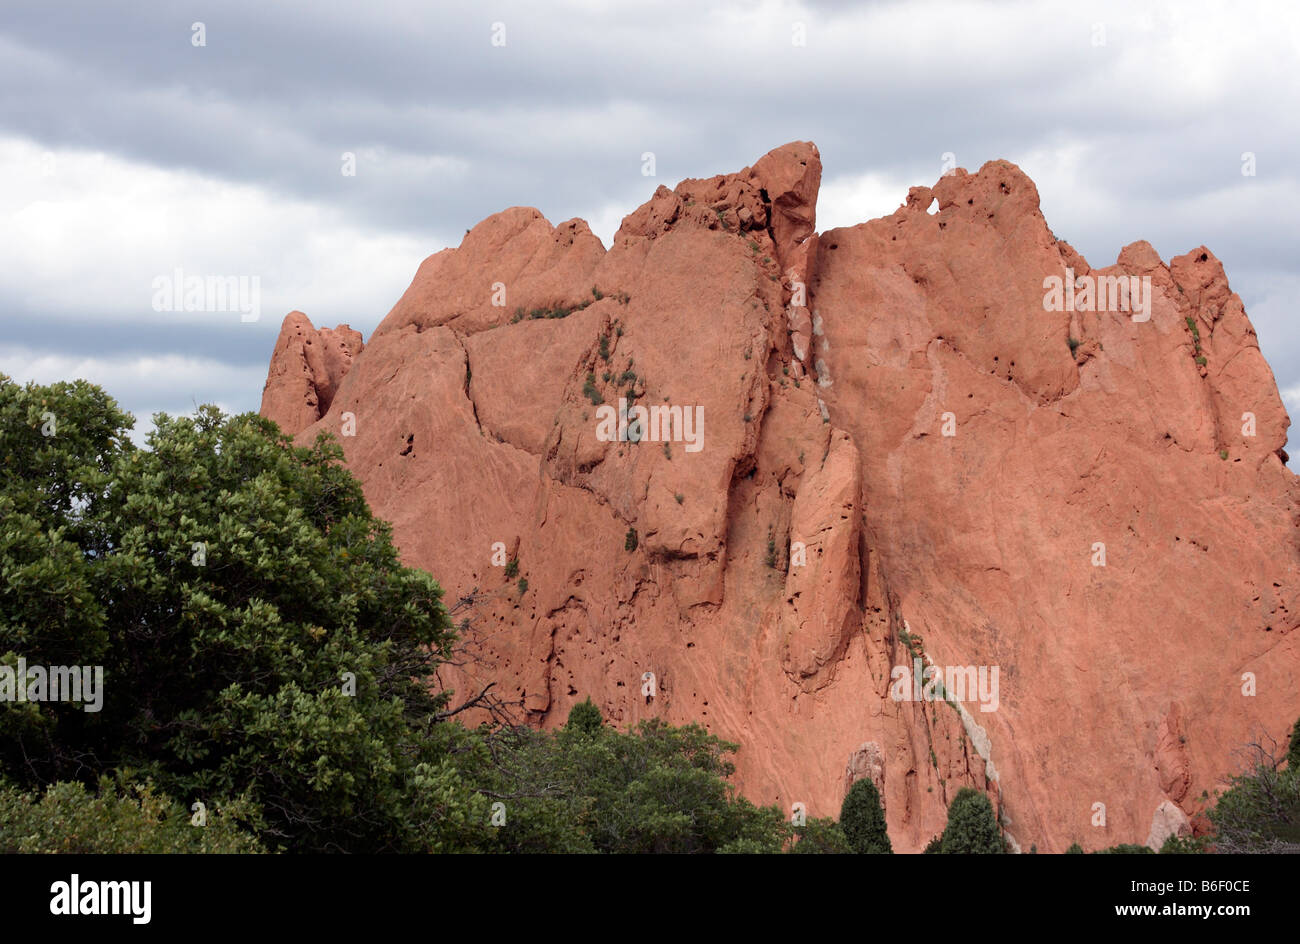 Garden of the Gods is a public park located in Colorado Springs ...